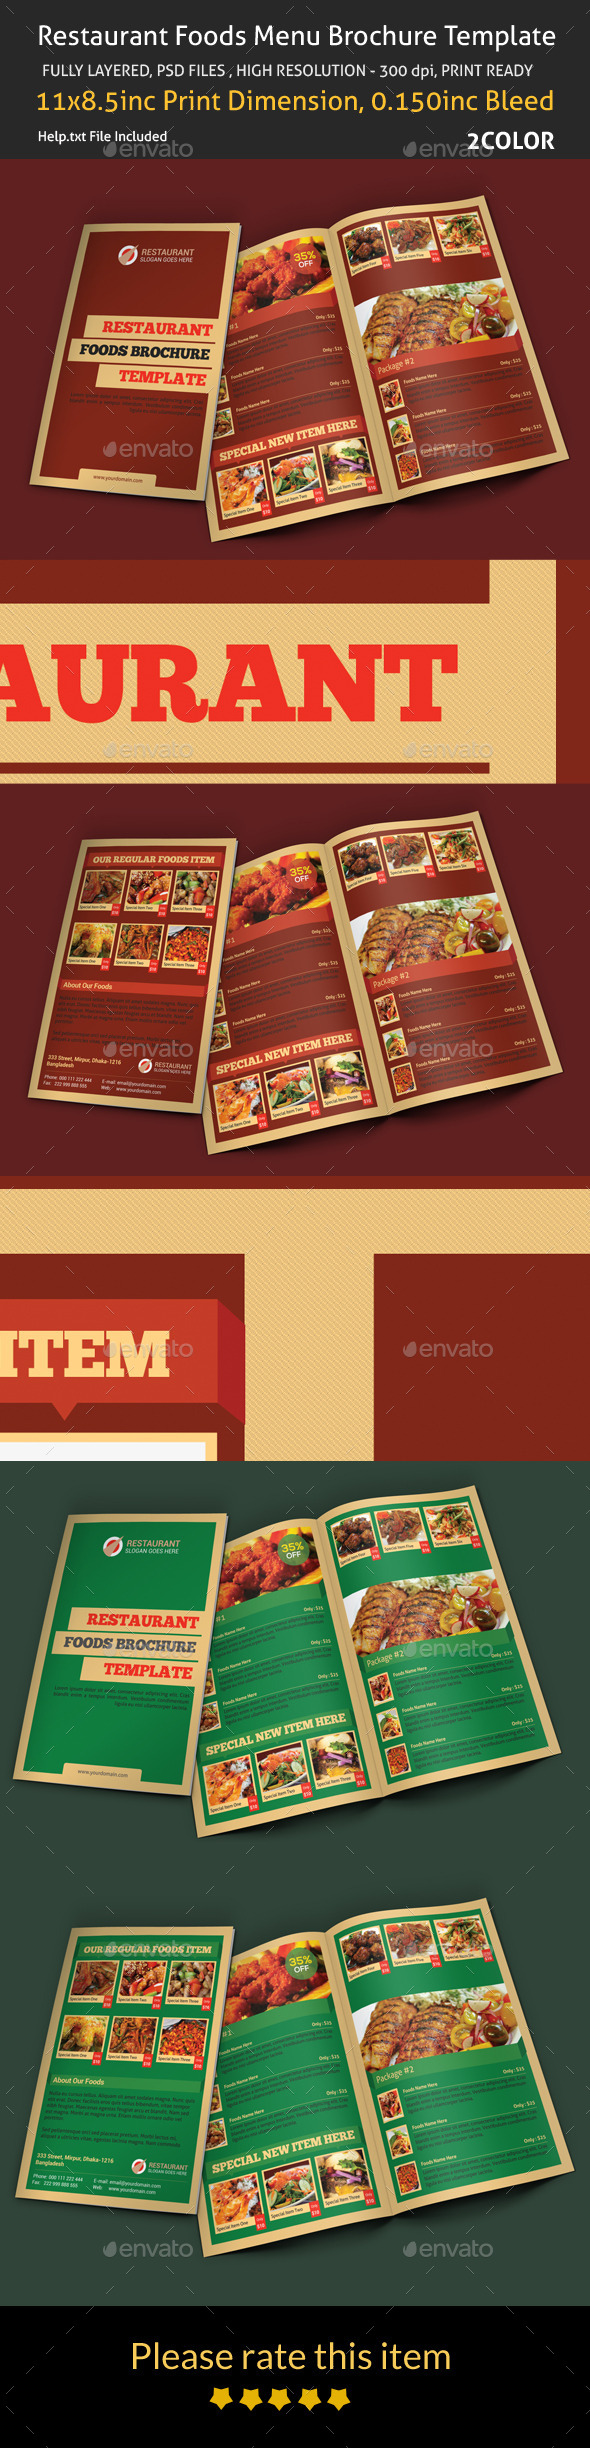 GraphicRiver Restaurant Foods Menu Brochure Template 8899561